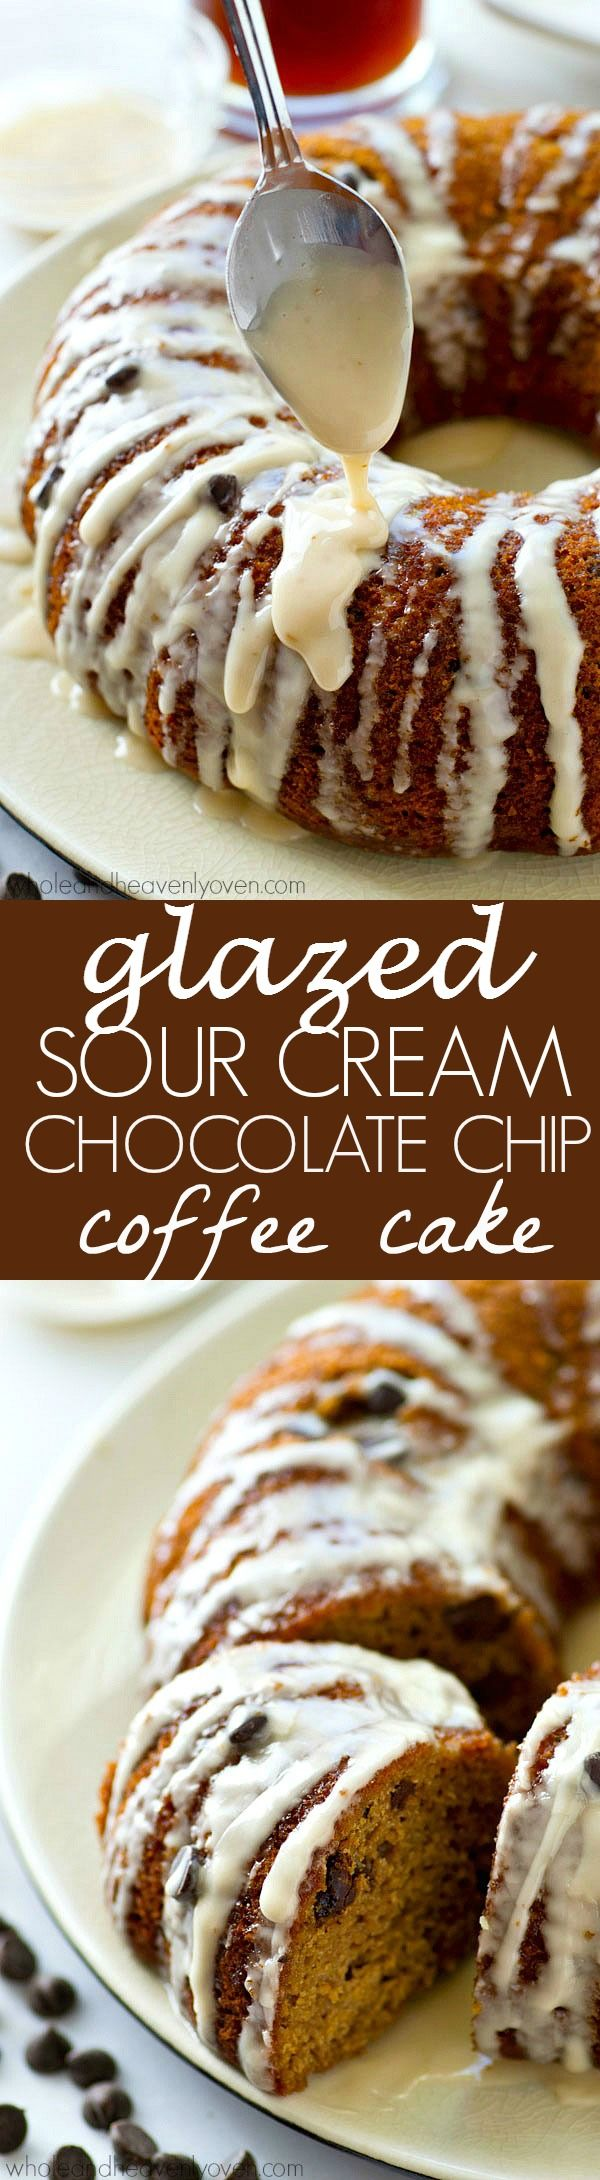 The absolute BEST classic sour cream coffee cake you'll ever have! Studded with gooey chocolate inside and covered with plenty of glaze.